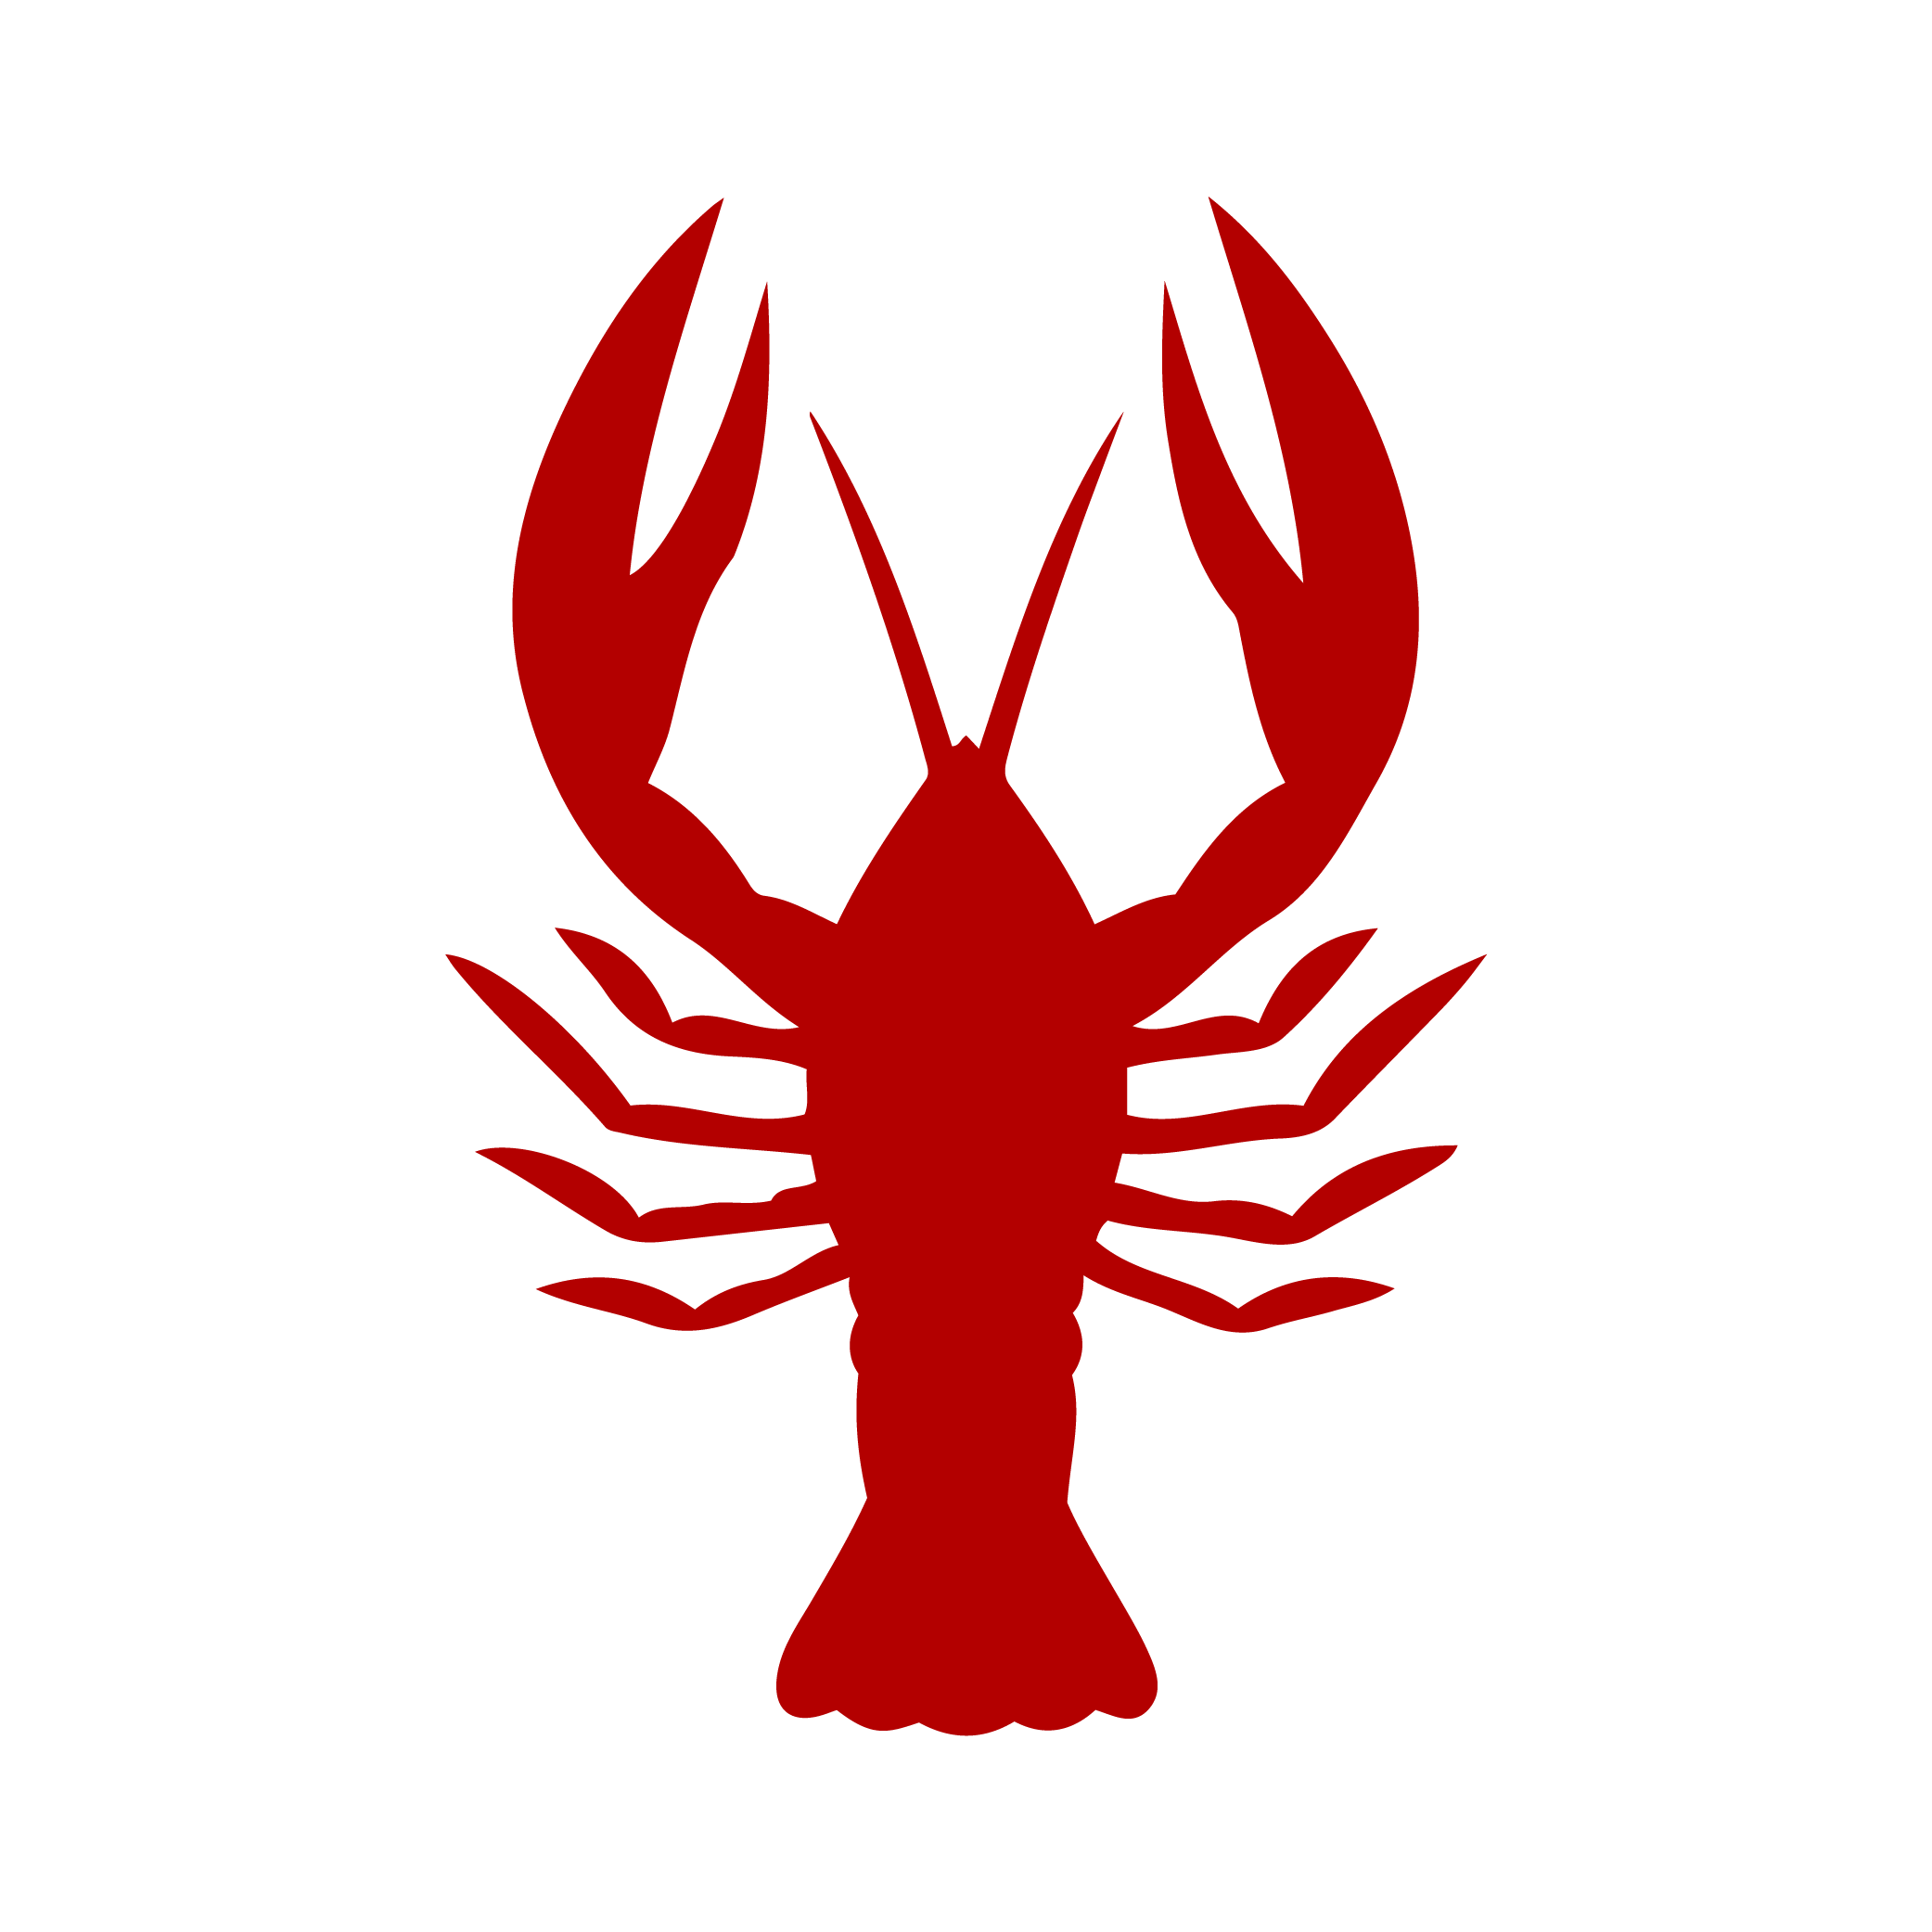 Crawfish clipart lobster. Crayfish vector graphics seafood